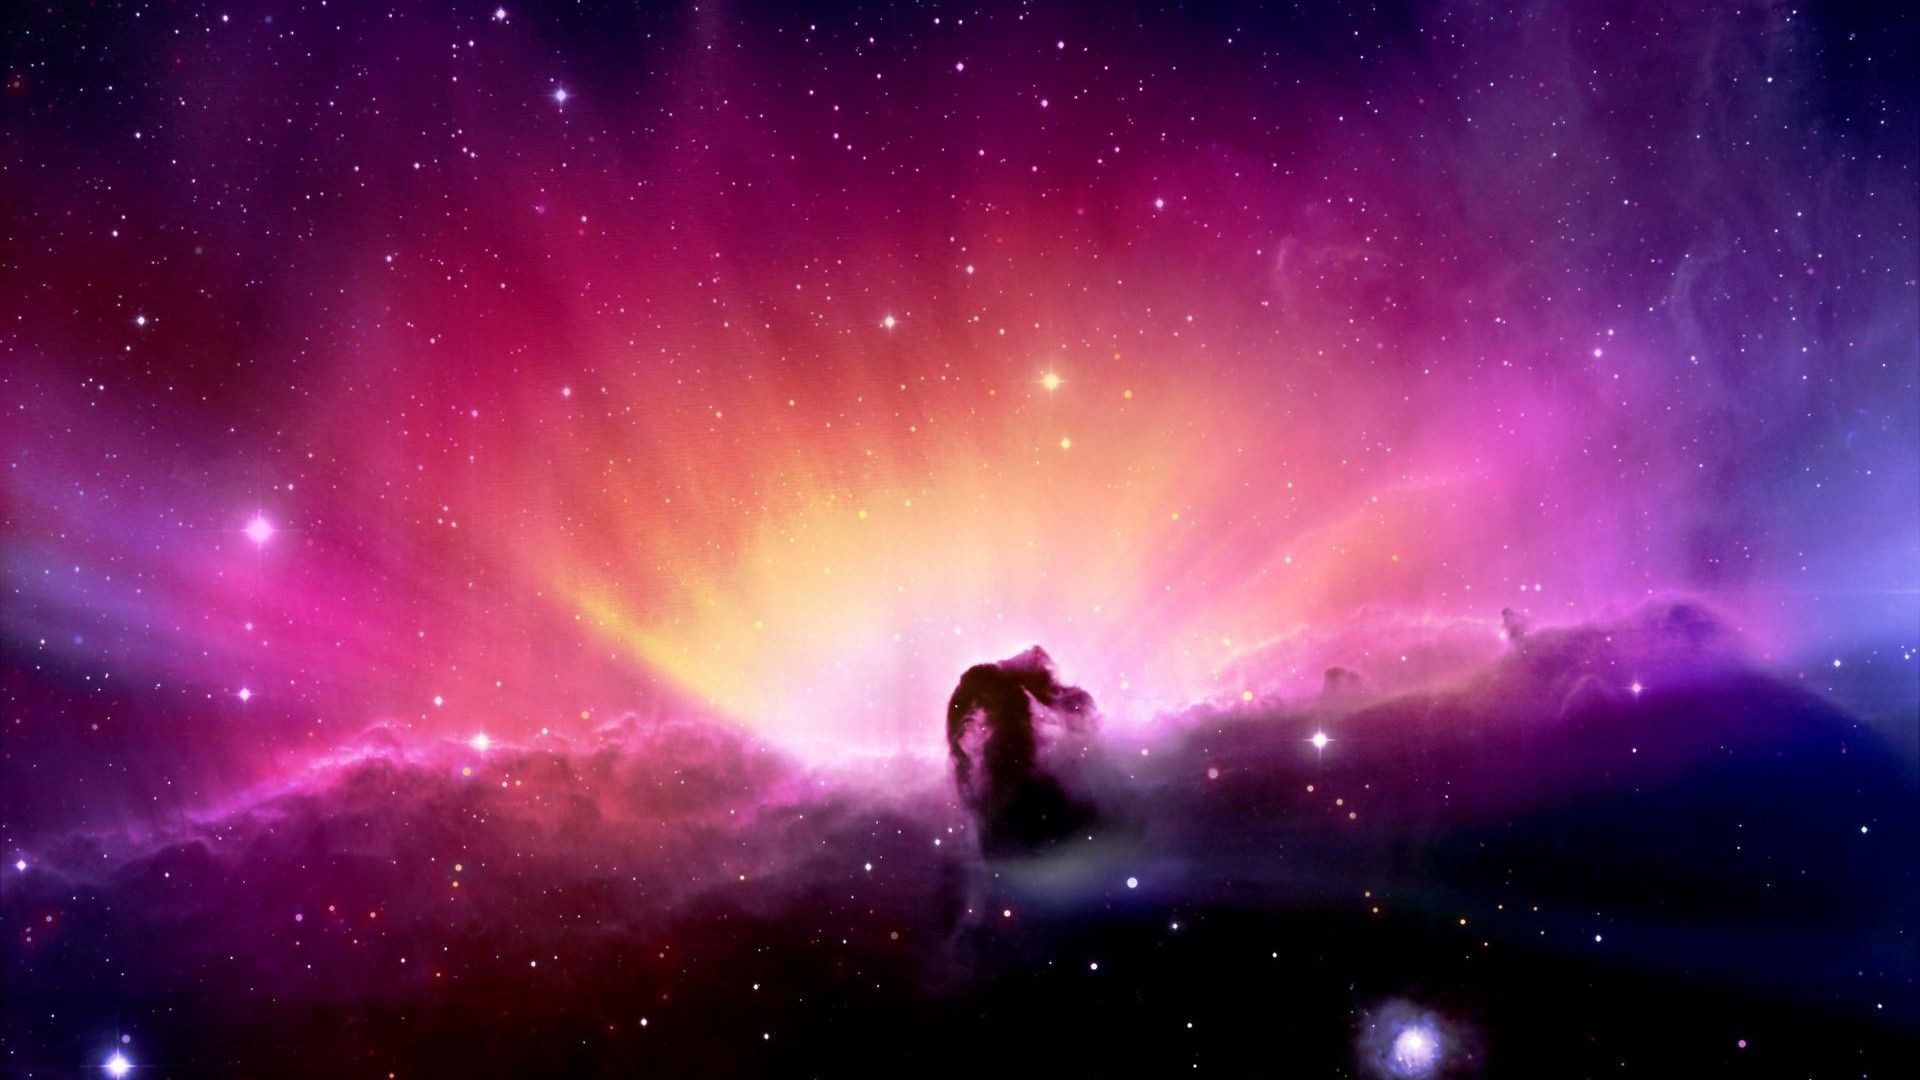 Hubble Space Wallpapers Full HD with High Definition Wallpaper px  159.84 KB Other Wallpapers Widescreen